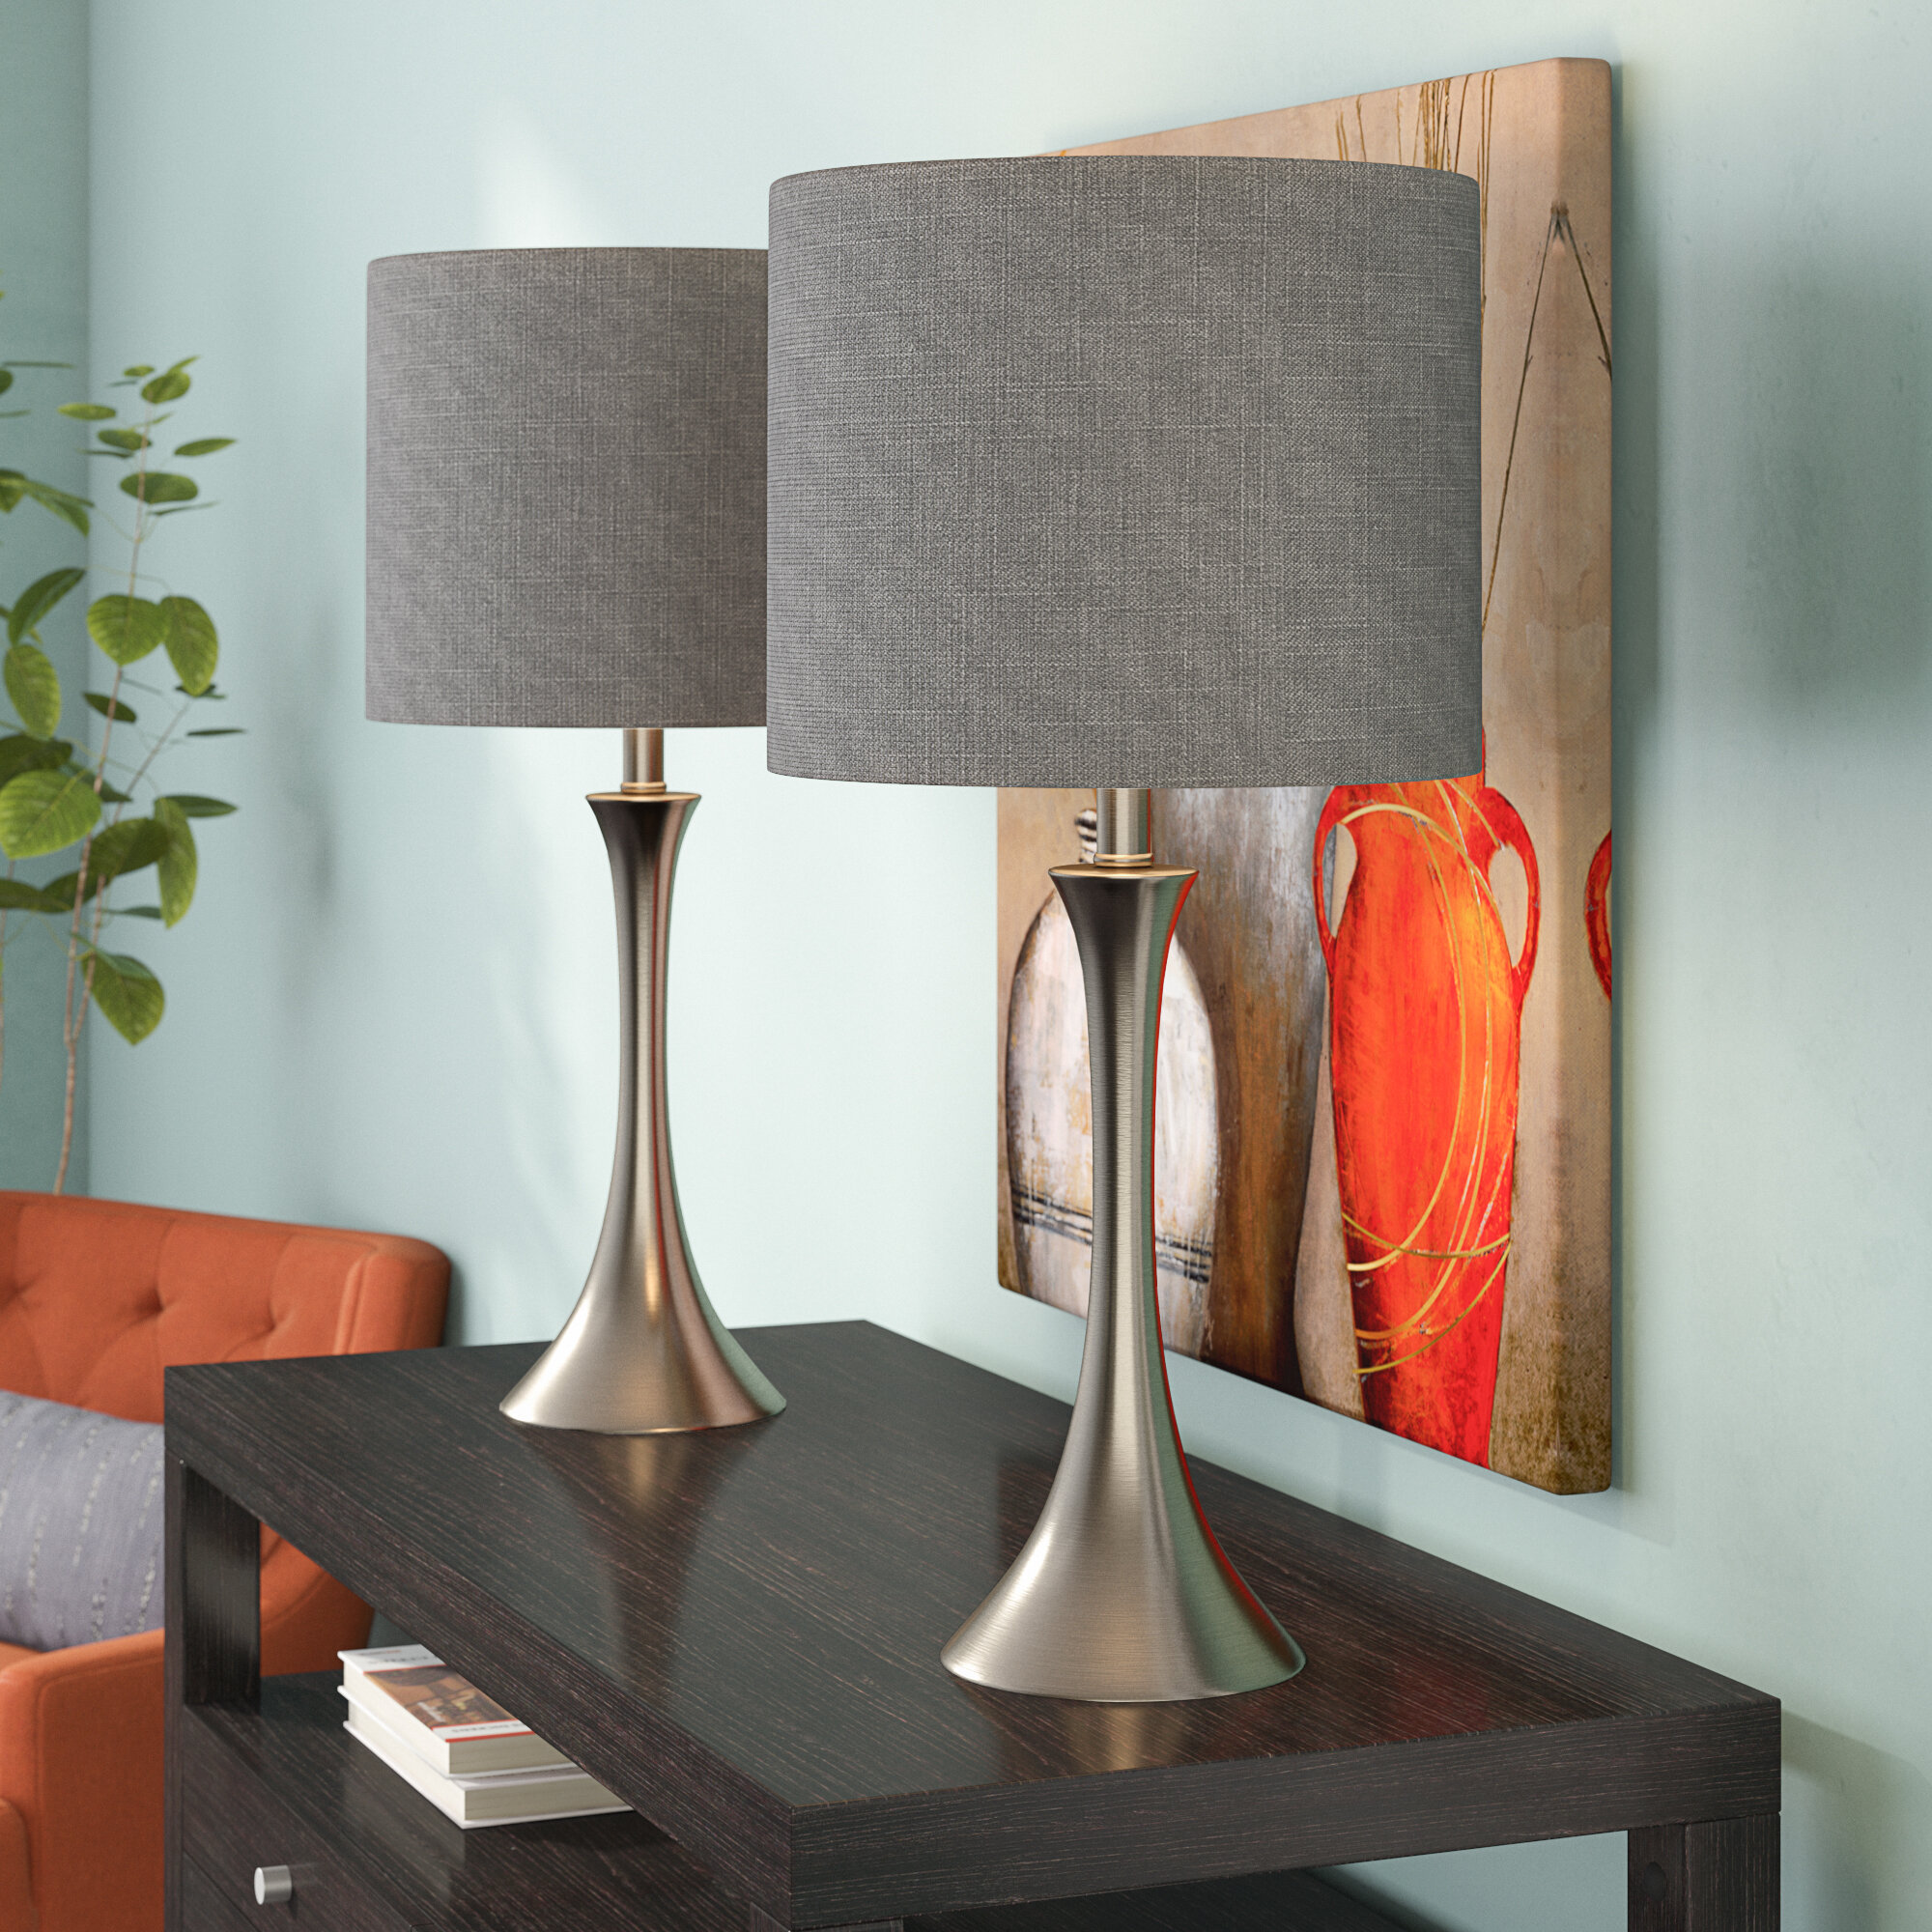 Lamp Sets  Up to 4% Off Through 4/4  Wayfair